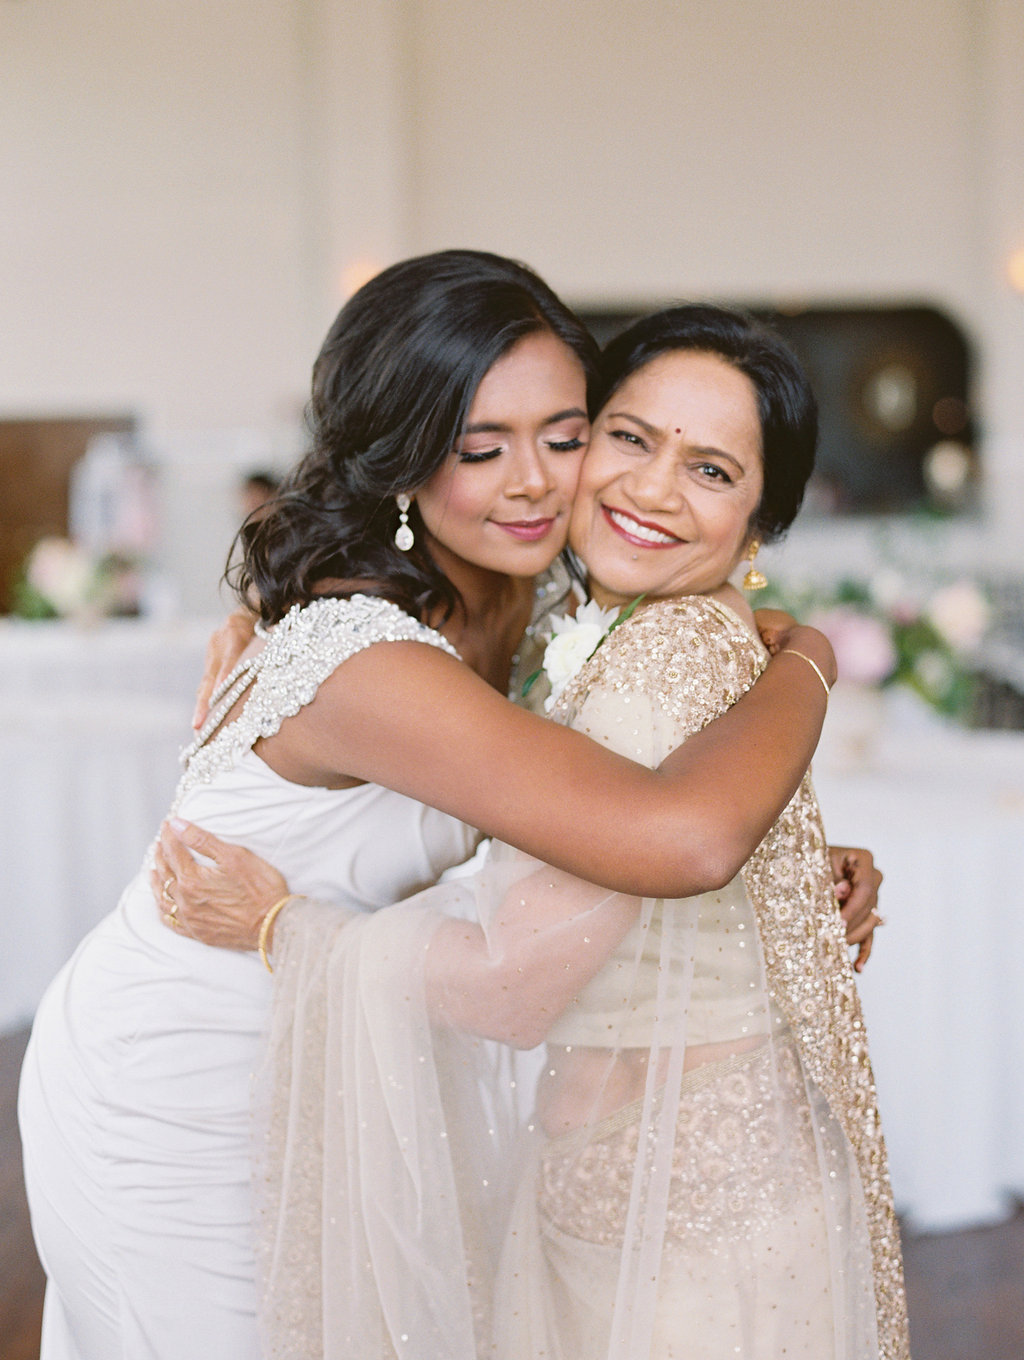 mom-and-daughter-at-wedding